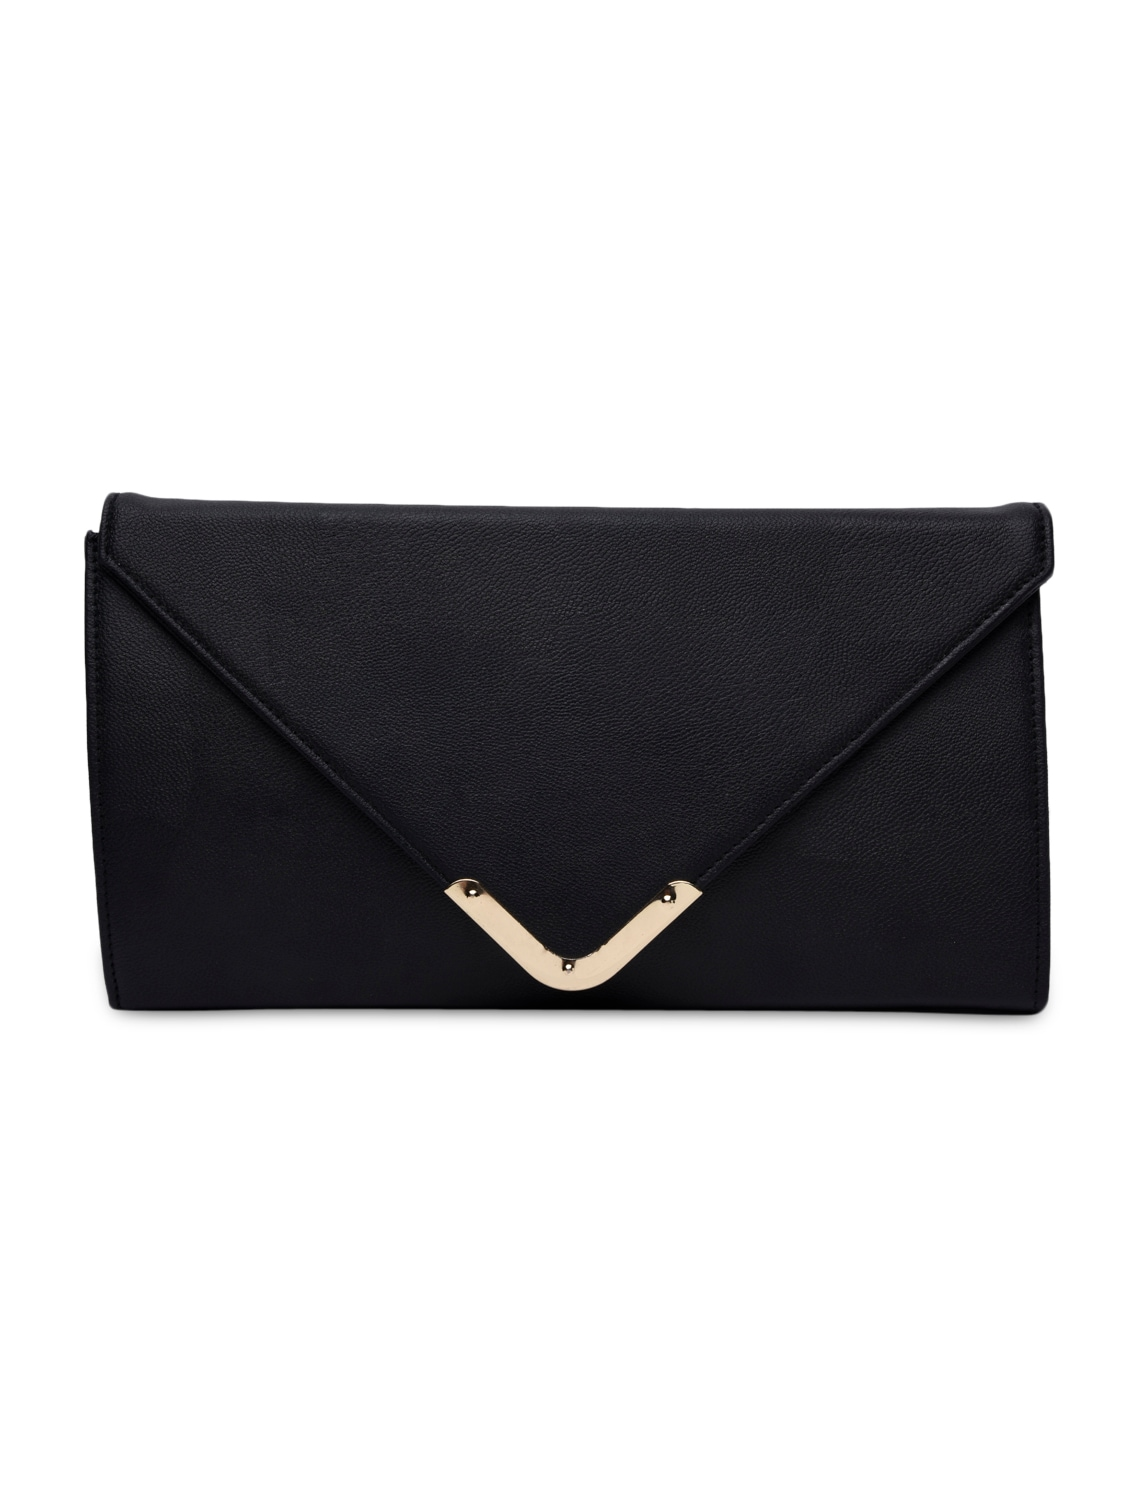 Black Leatherette Plain Clutch - By